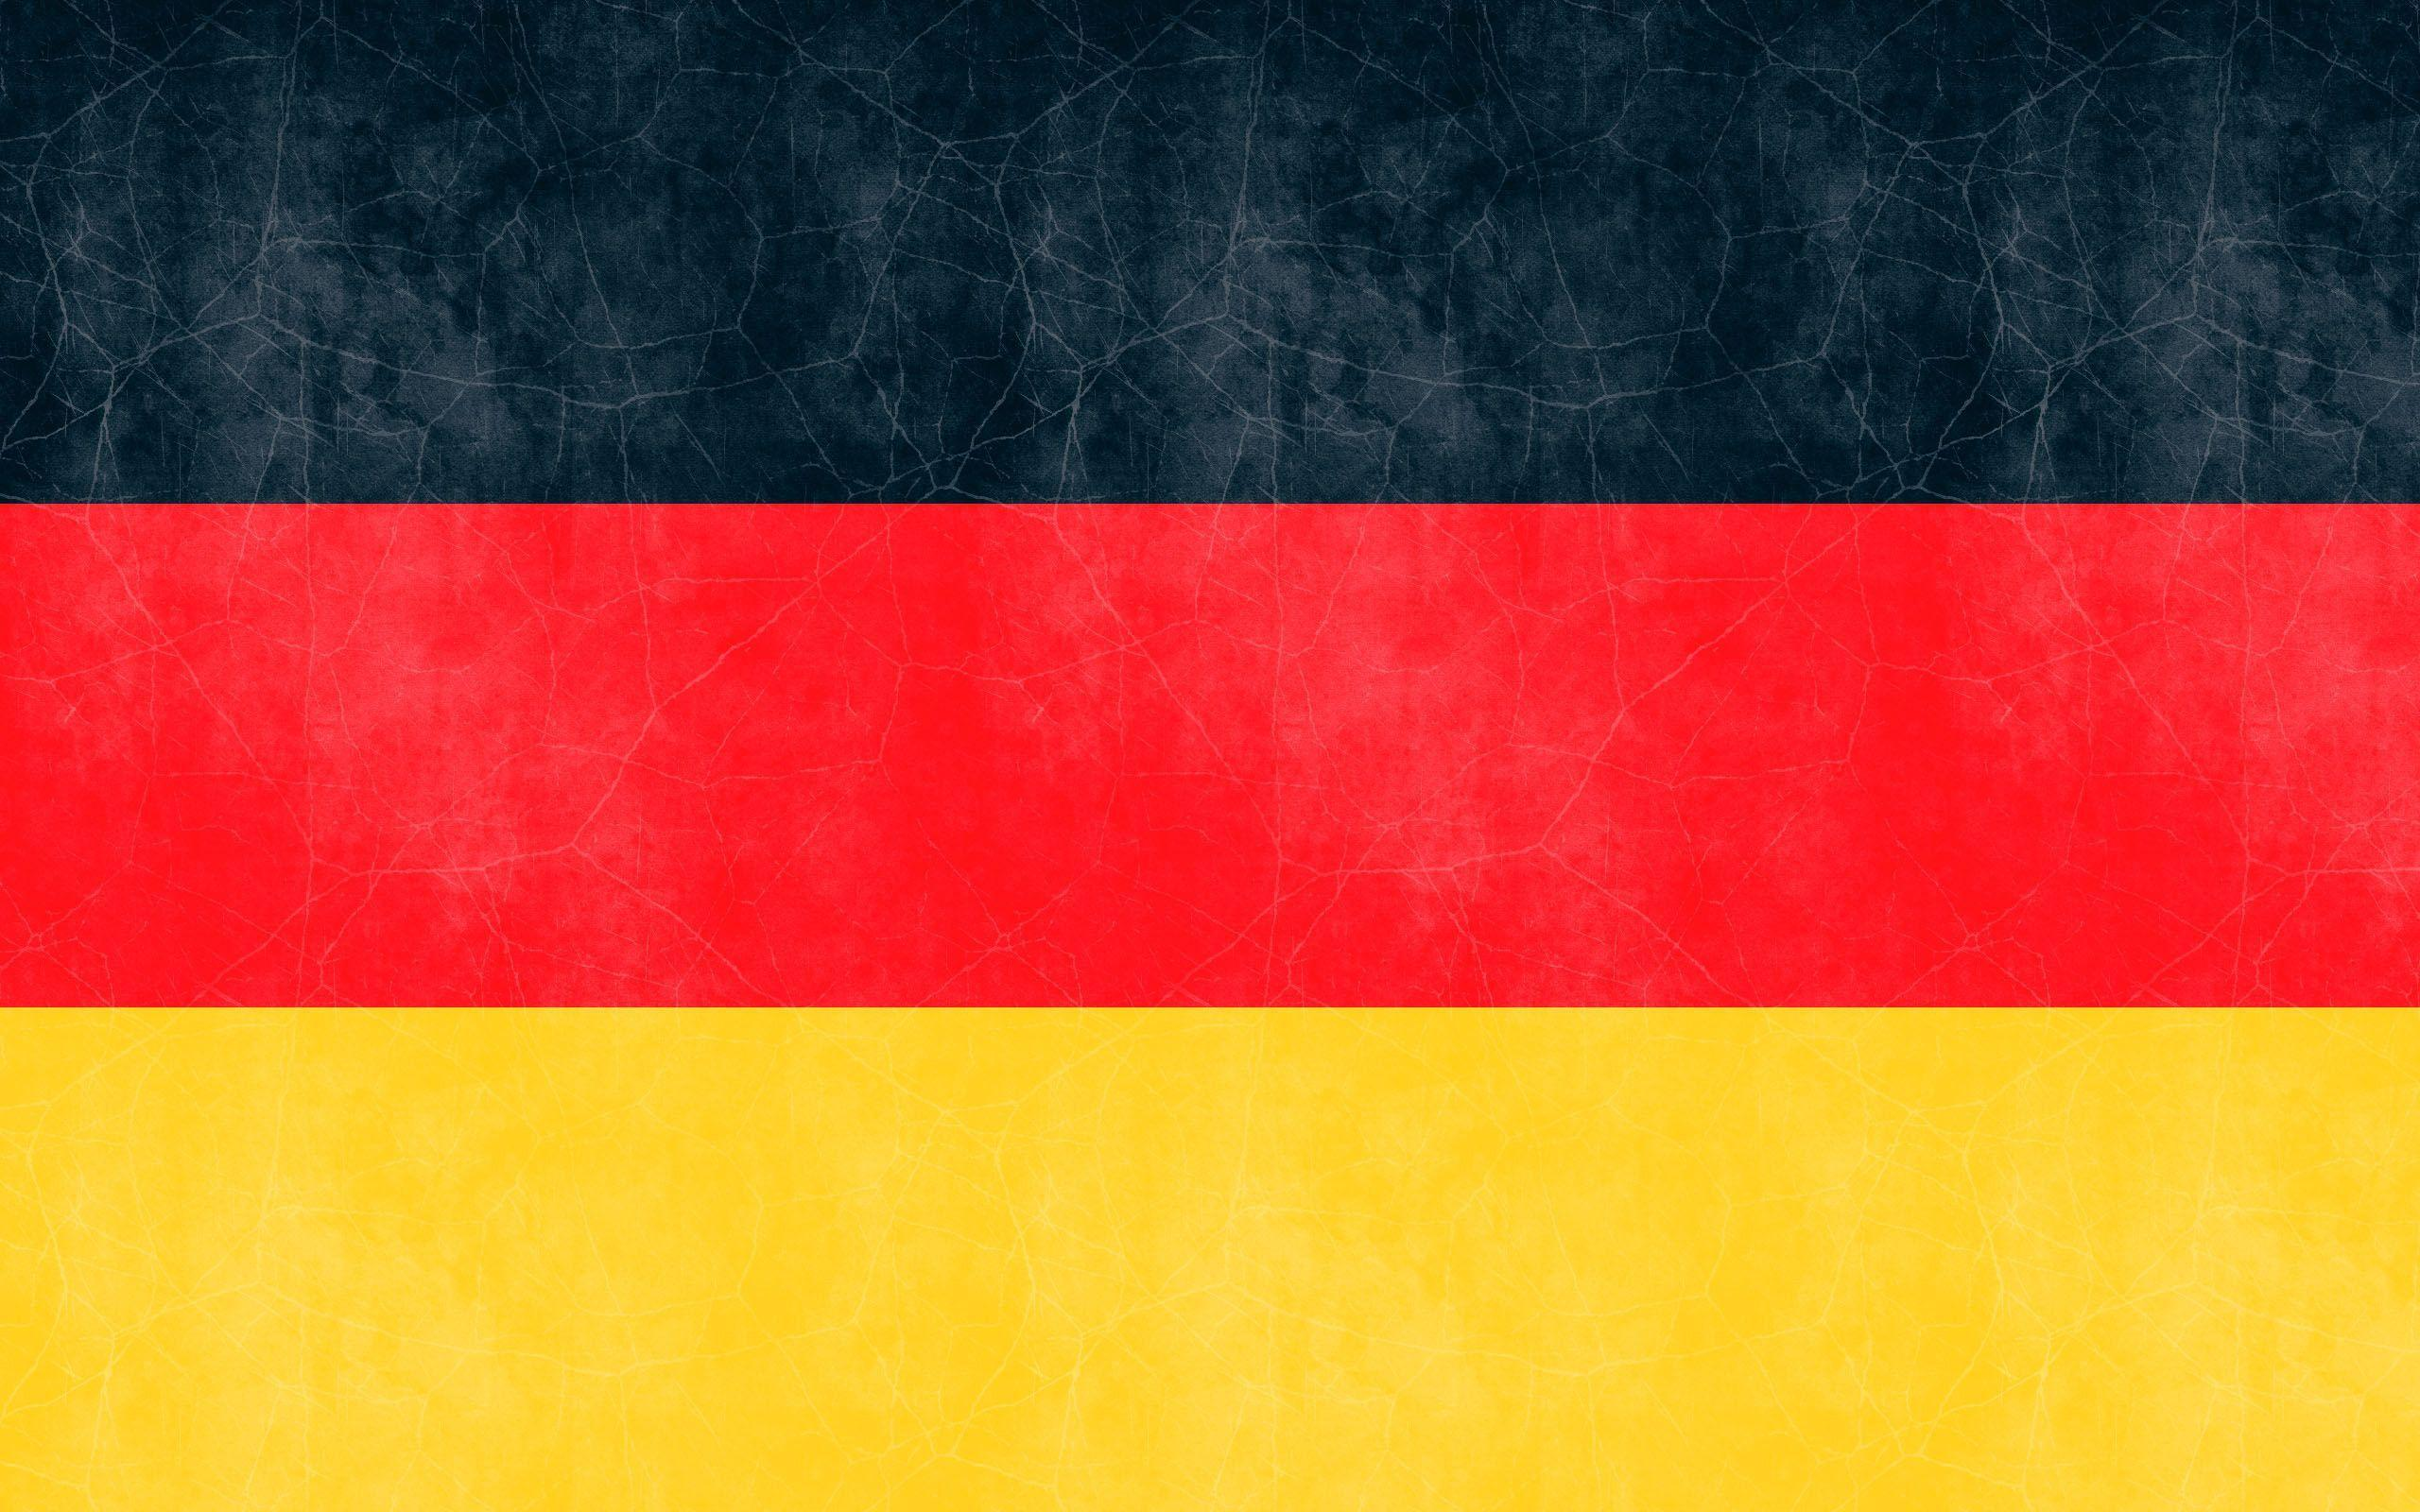 germany flag wallpaper vertical - photo #8